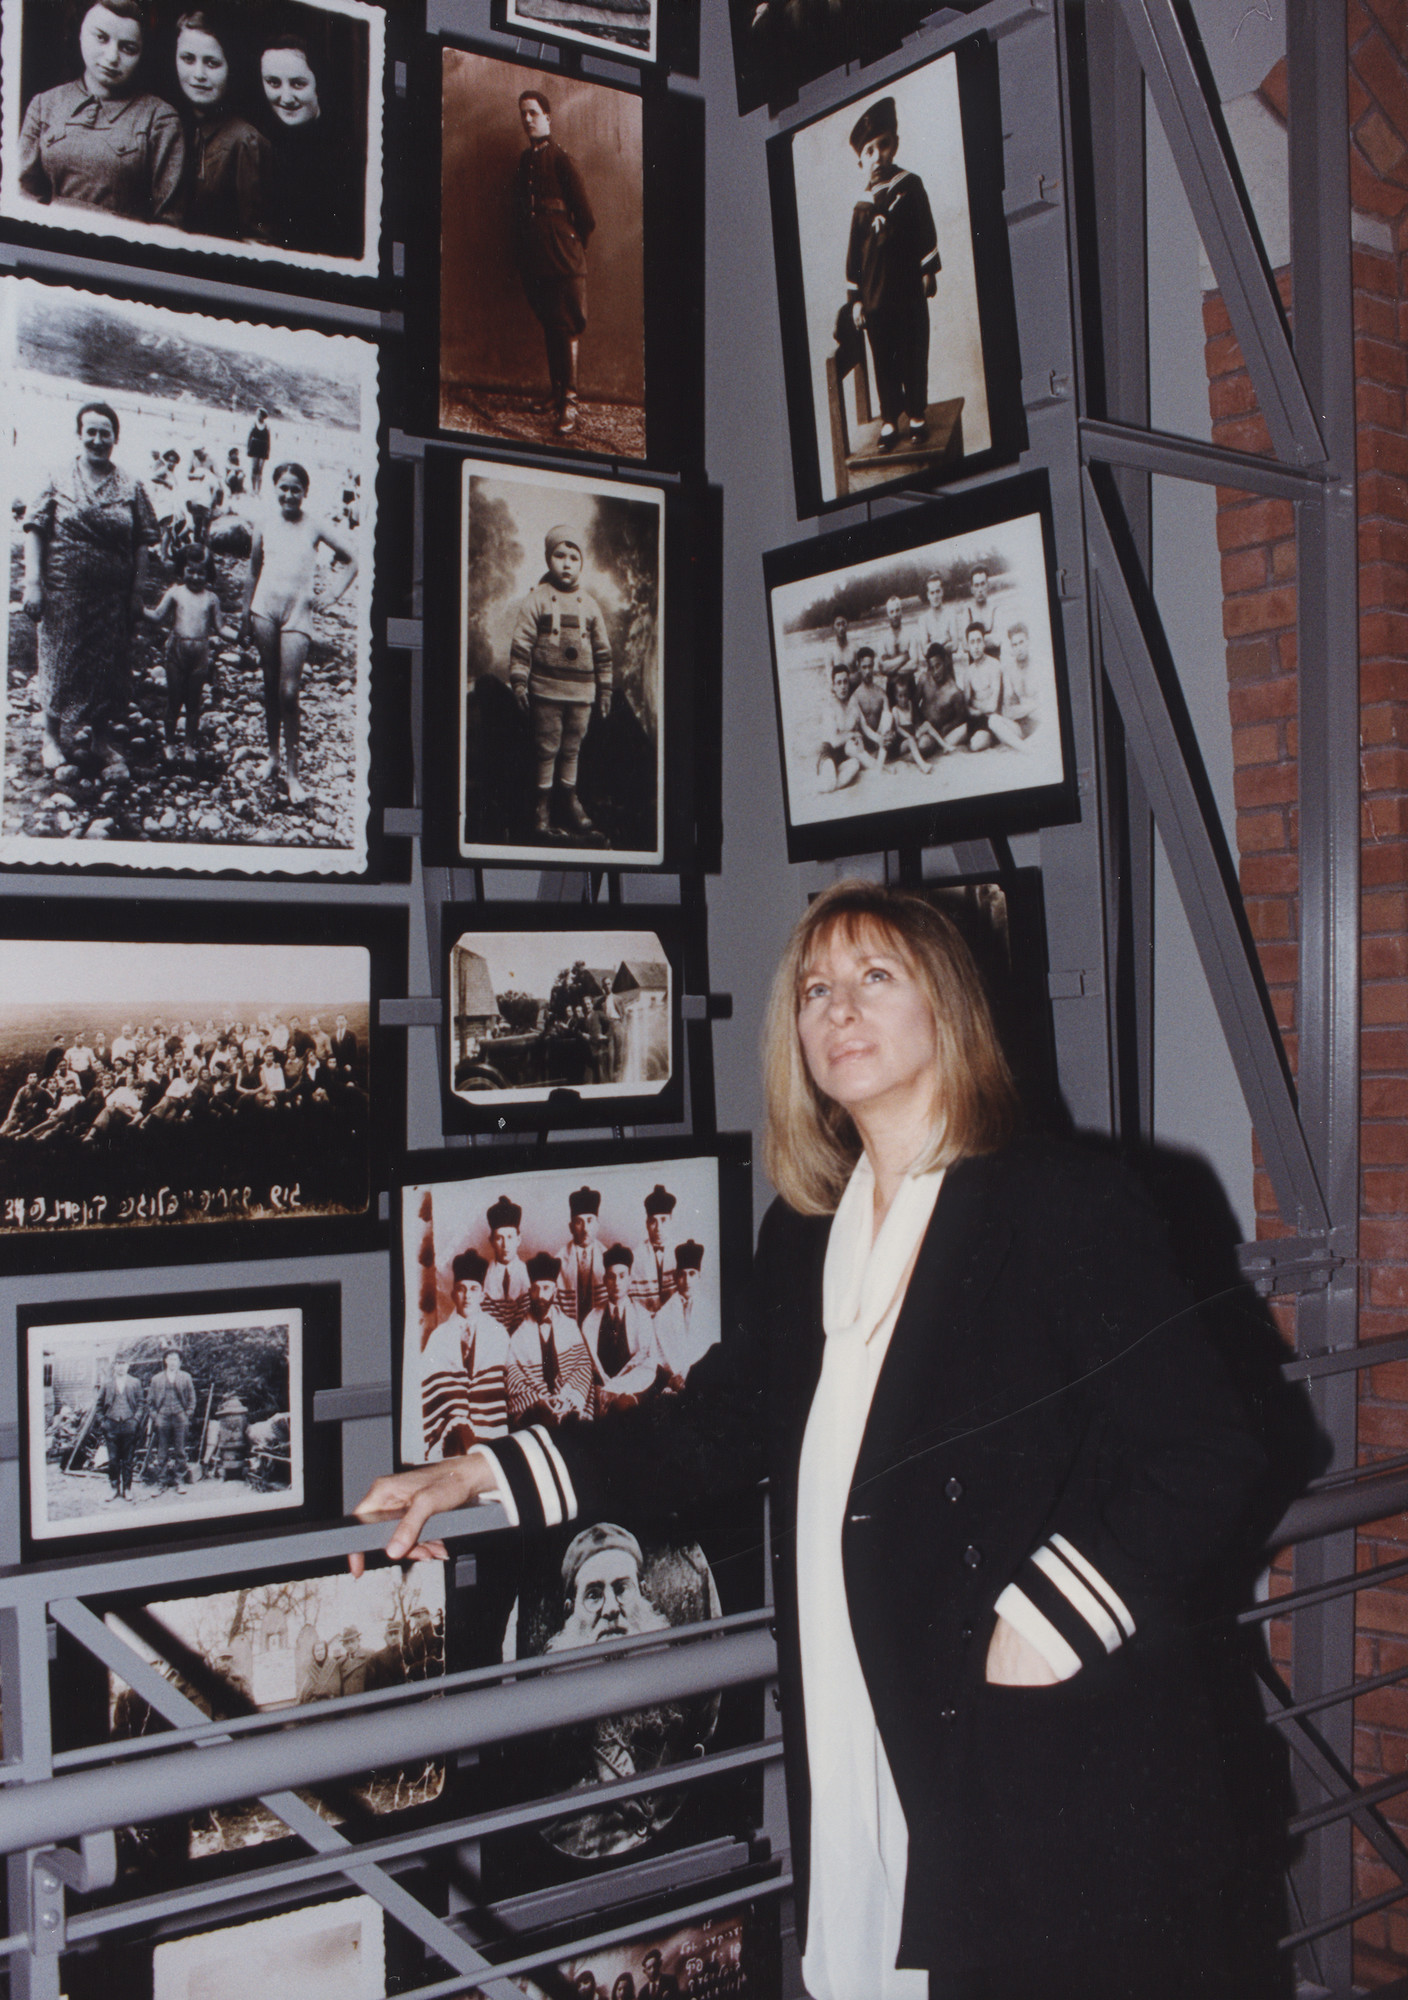 Actress Barbra Streisand poses on the bridge in the Tower of Faces (the Yaffa Eliach Shtetl Collection) segment of the Permanent Exhibition at the U.S. Holocaust Memorial Museum.